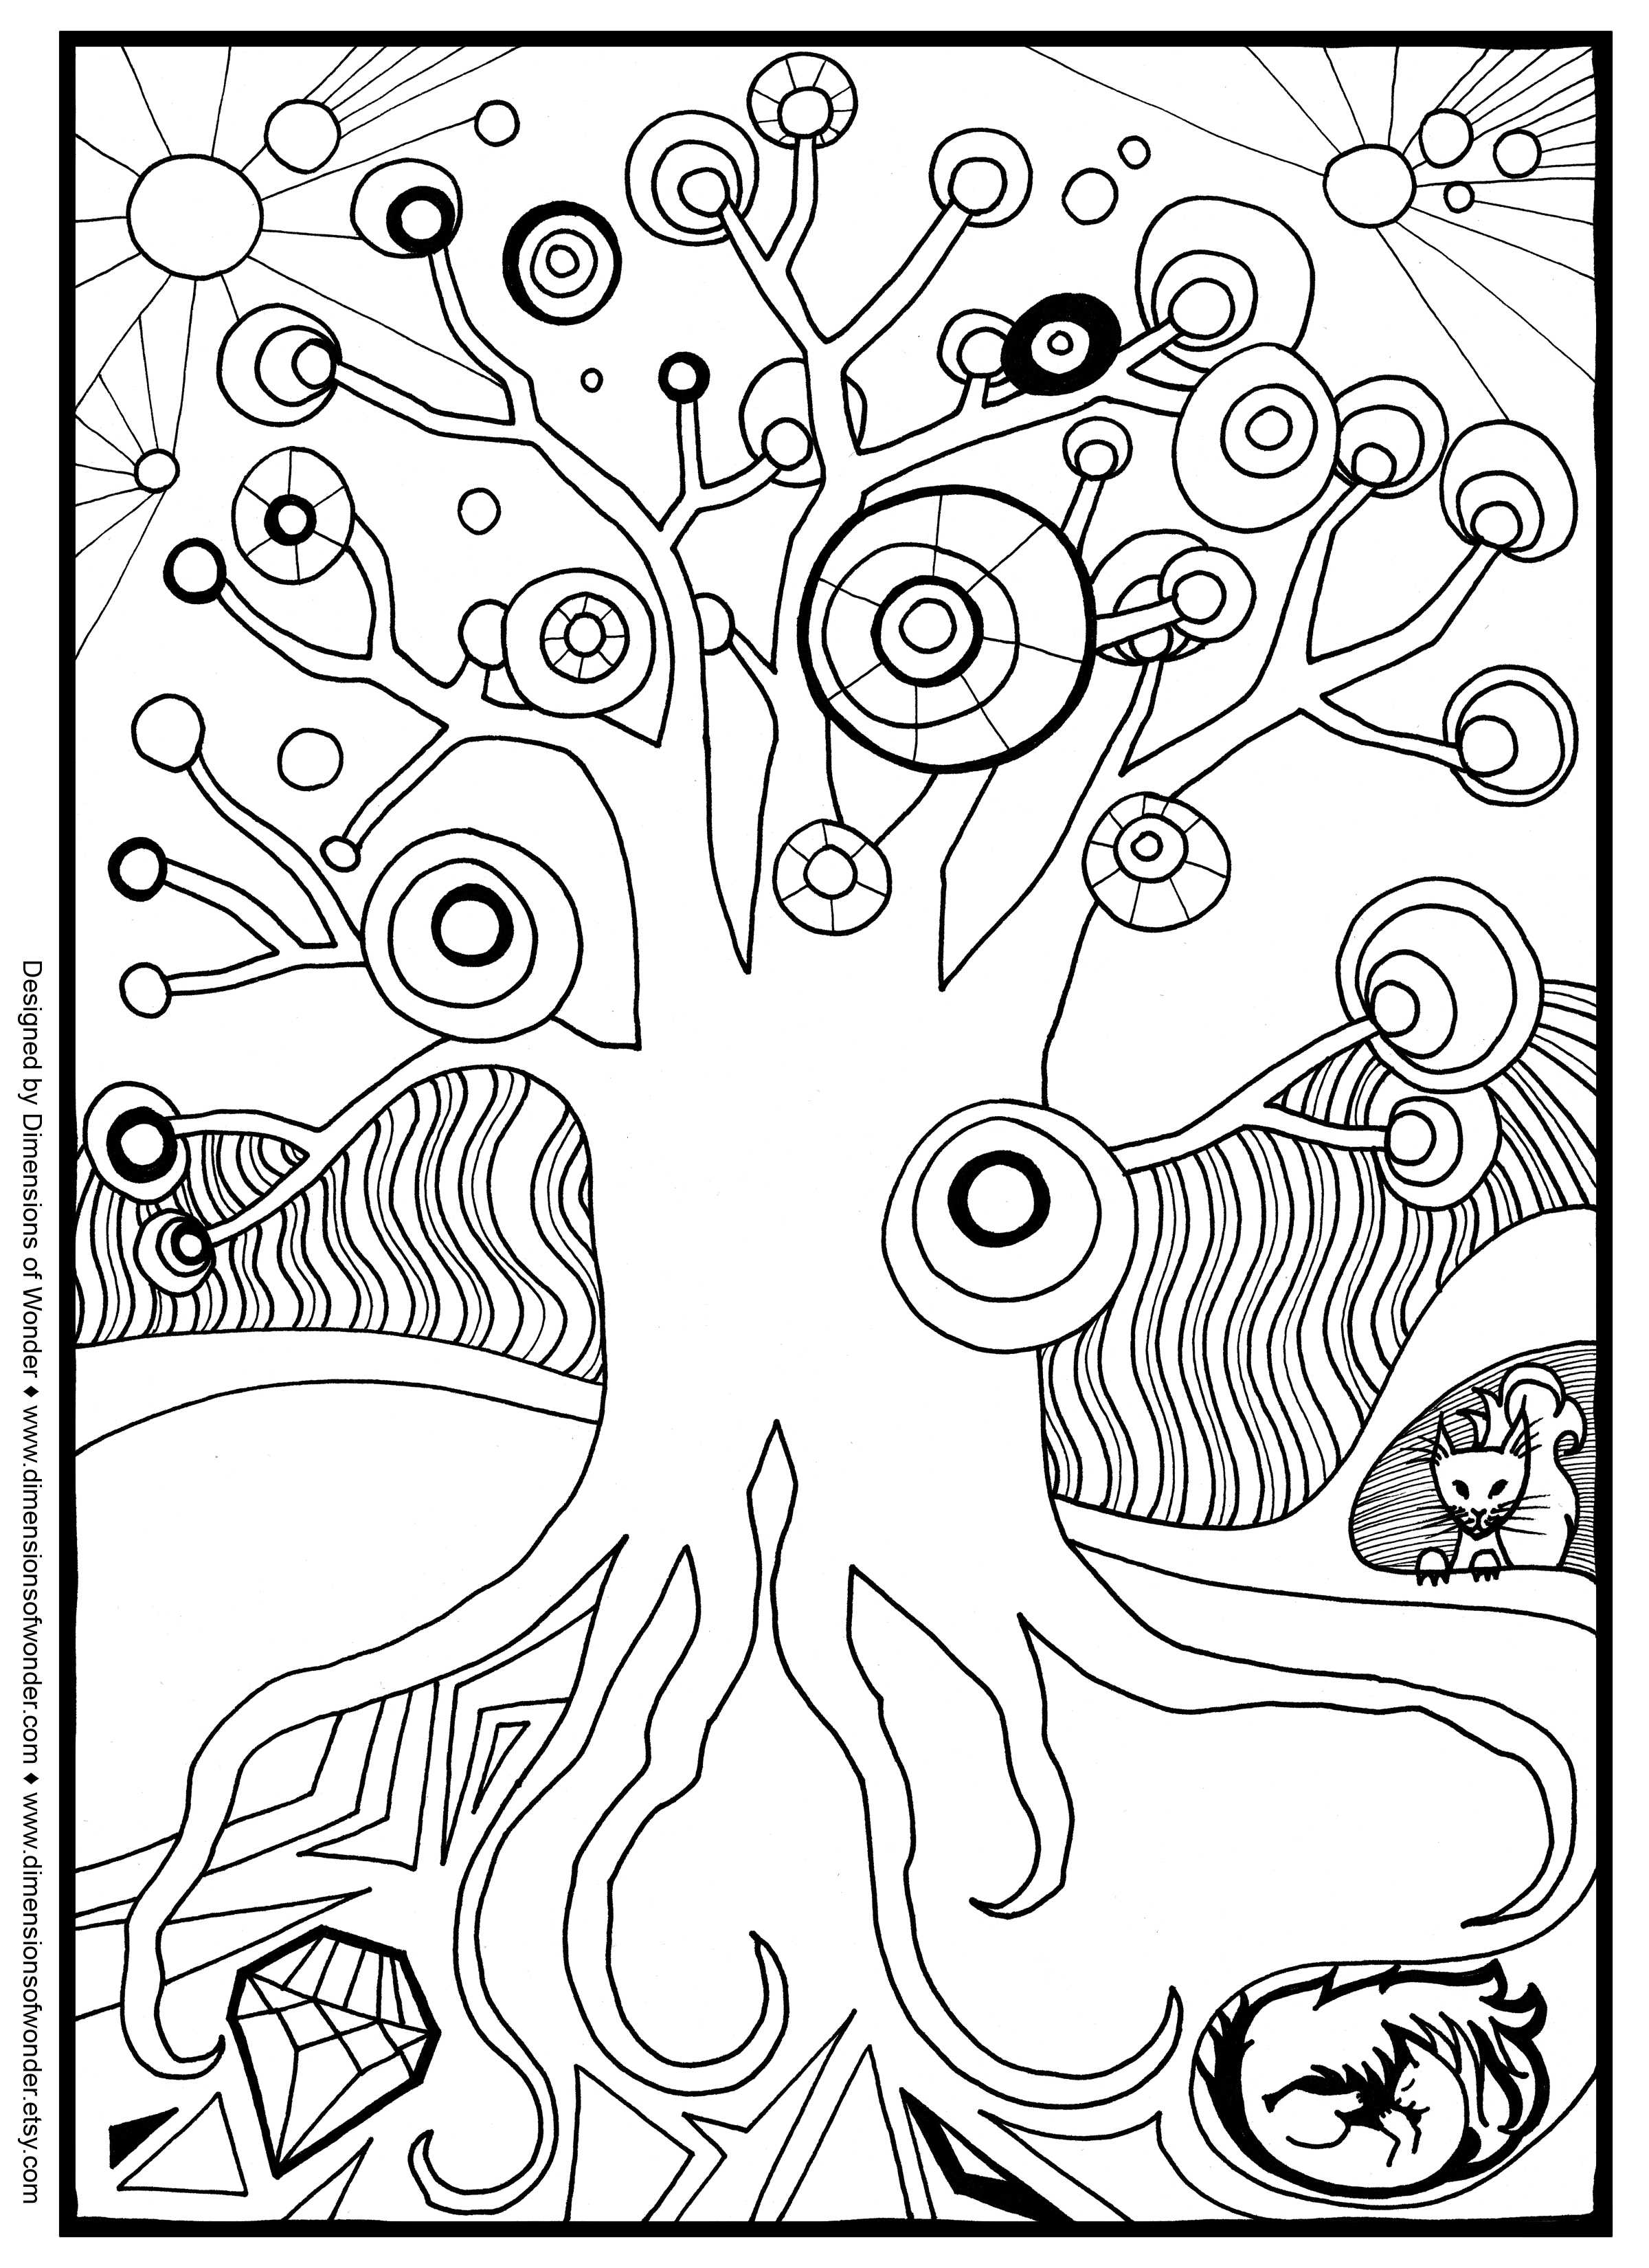 Ice Tree coloring #1, Download drawings